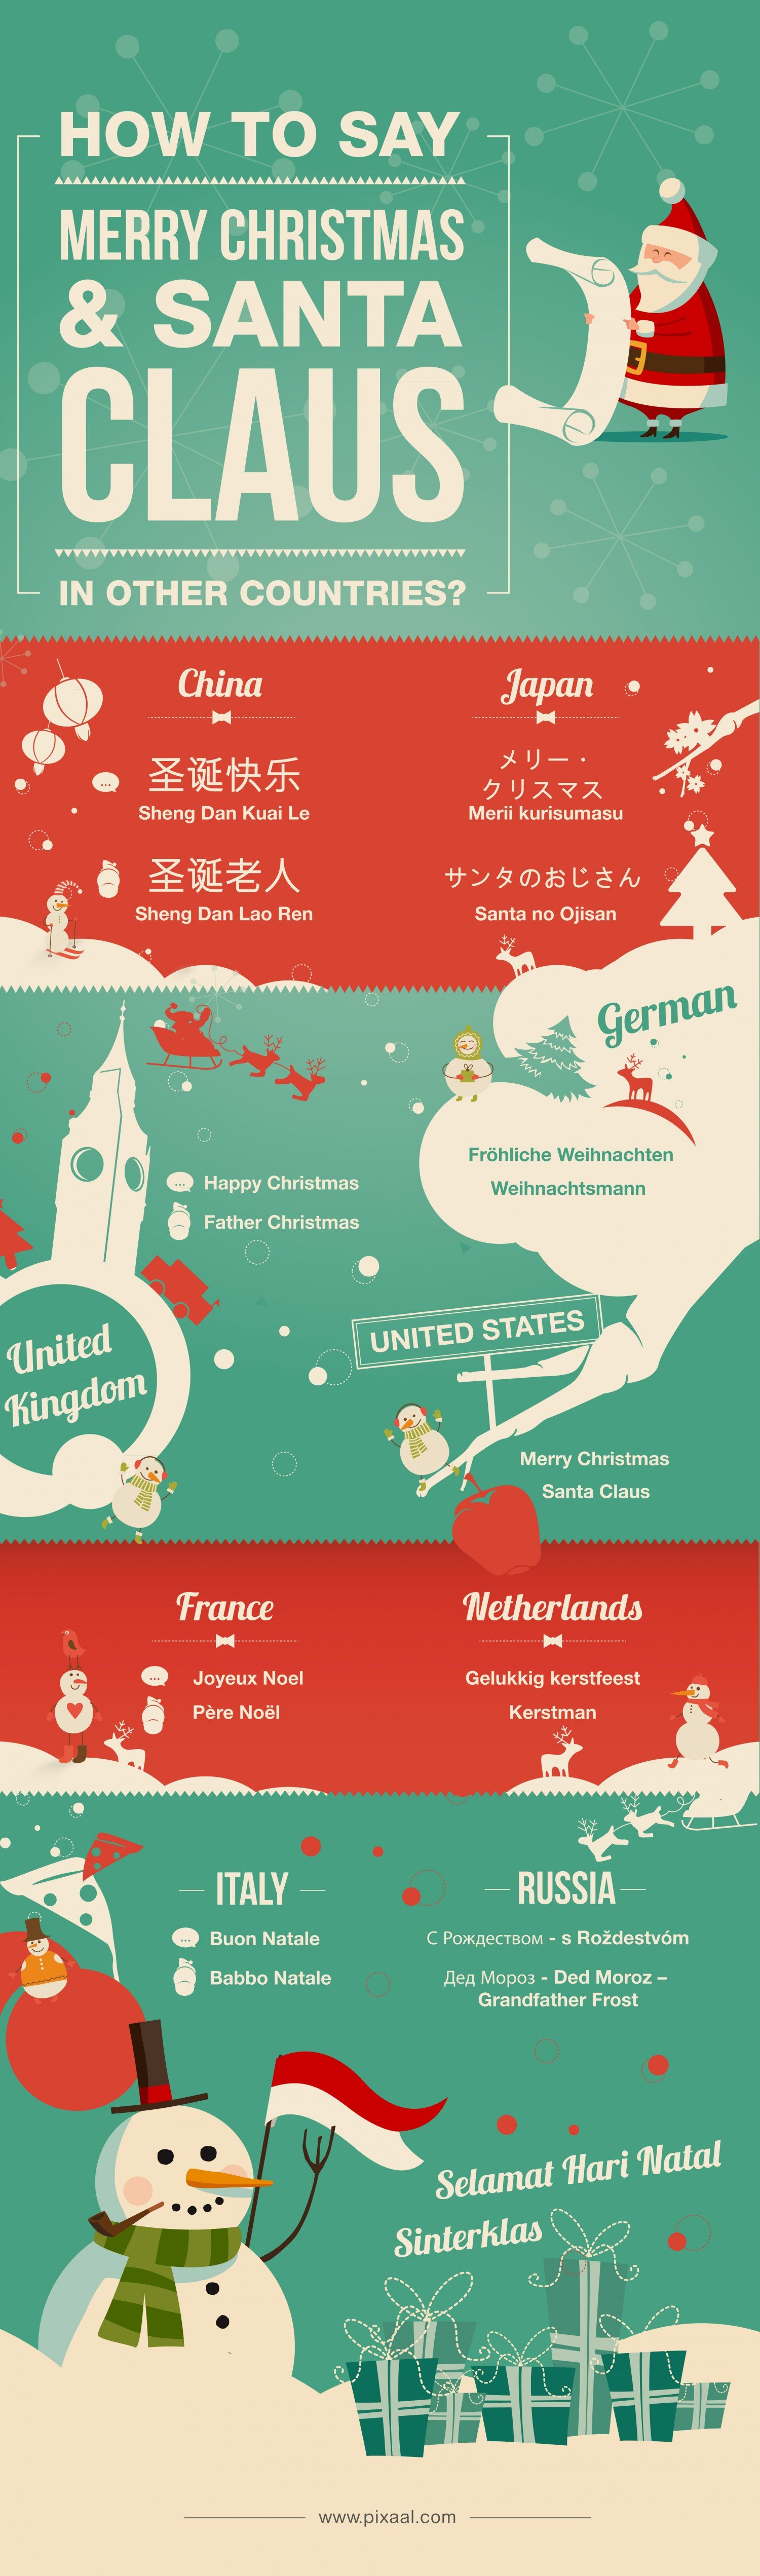 How to Say Merry Christmas and Santa Claus in Other Languages